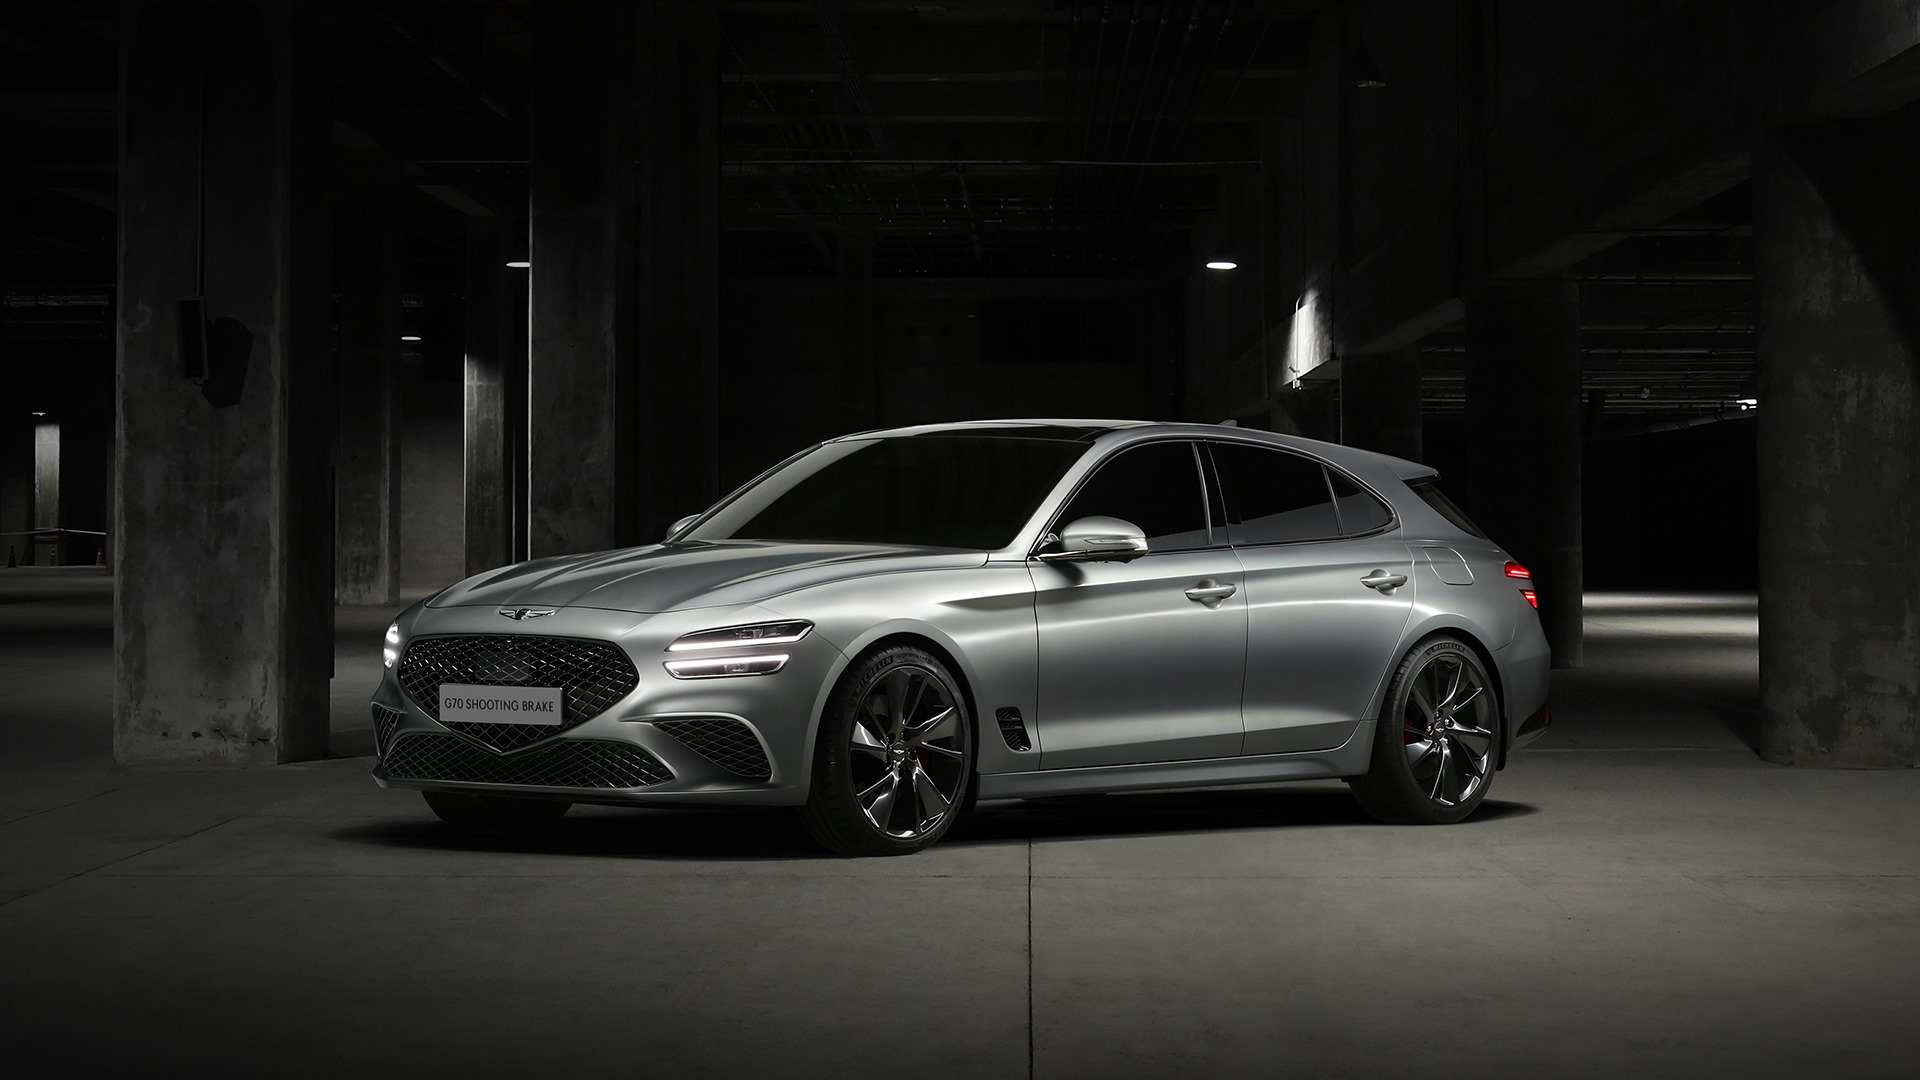 2022 Genesis G70 Shooting Brake is a handsome wagon for Europe